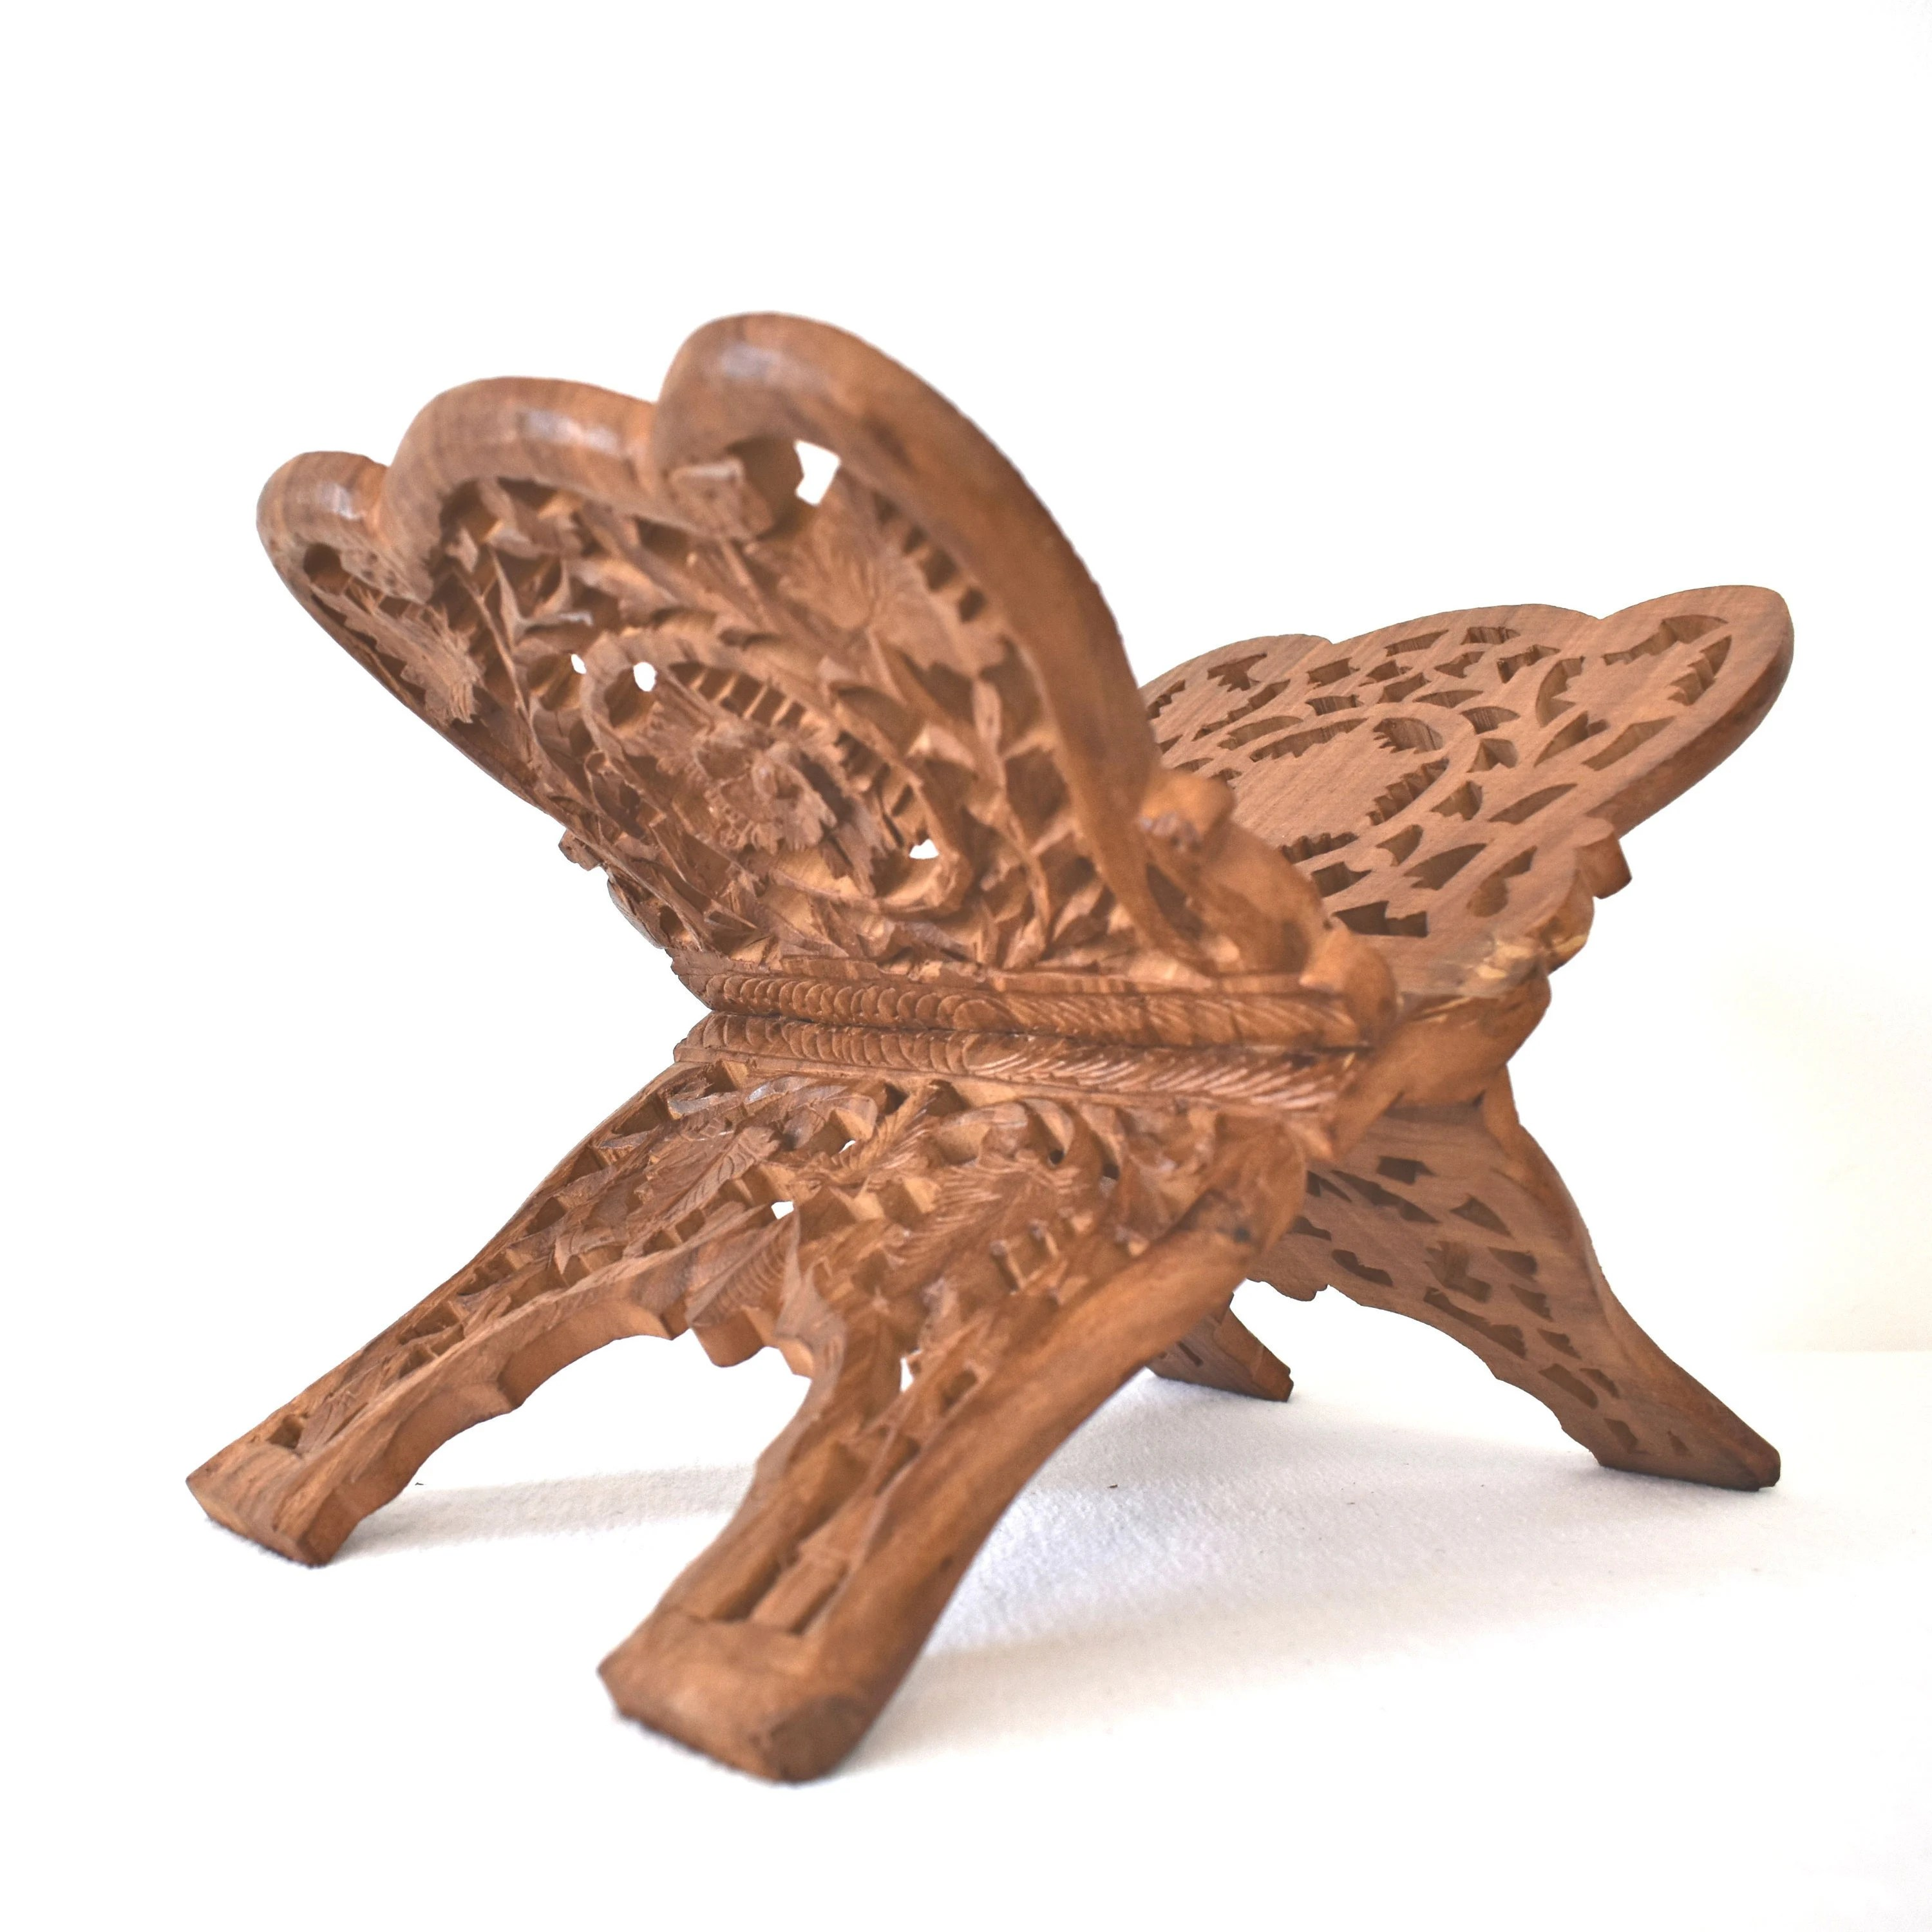 chair side book stand counter height desk carved wood holder with floral motif vintage folding etsy image 0